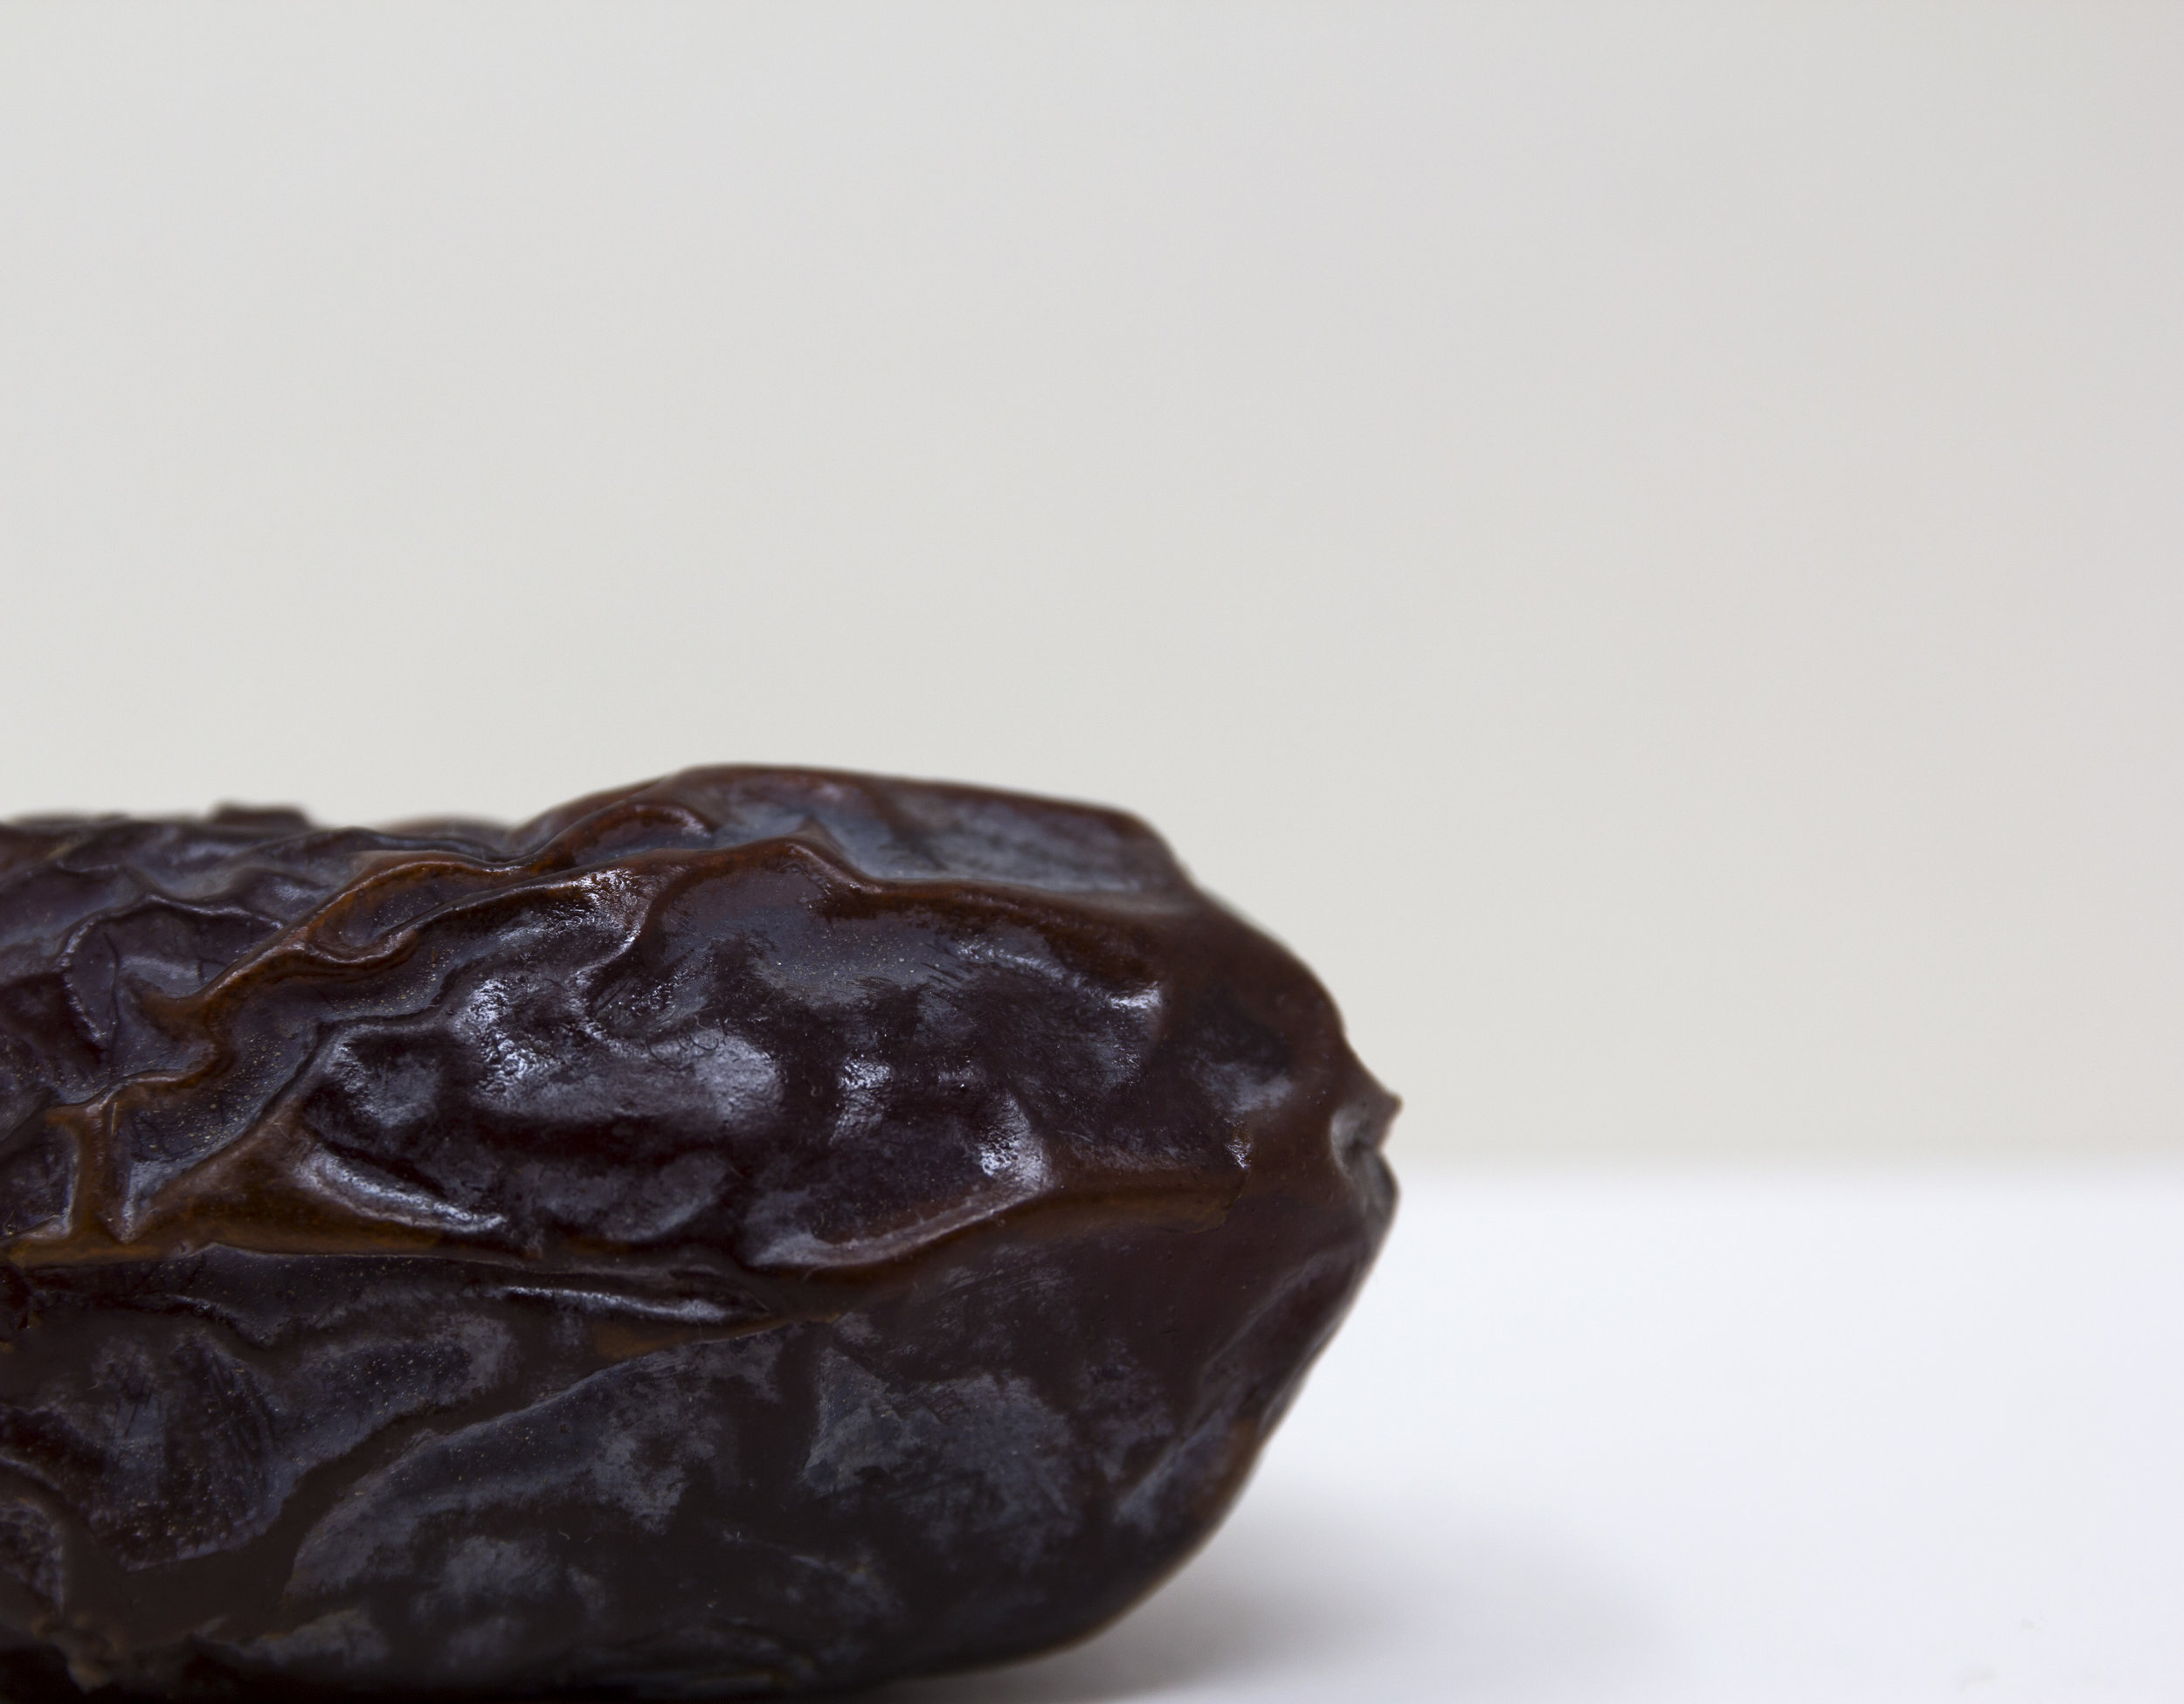 A simple, minimalist, contemporary, fine art clue-up photograph of a date